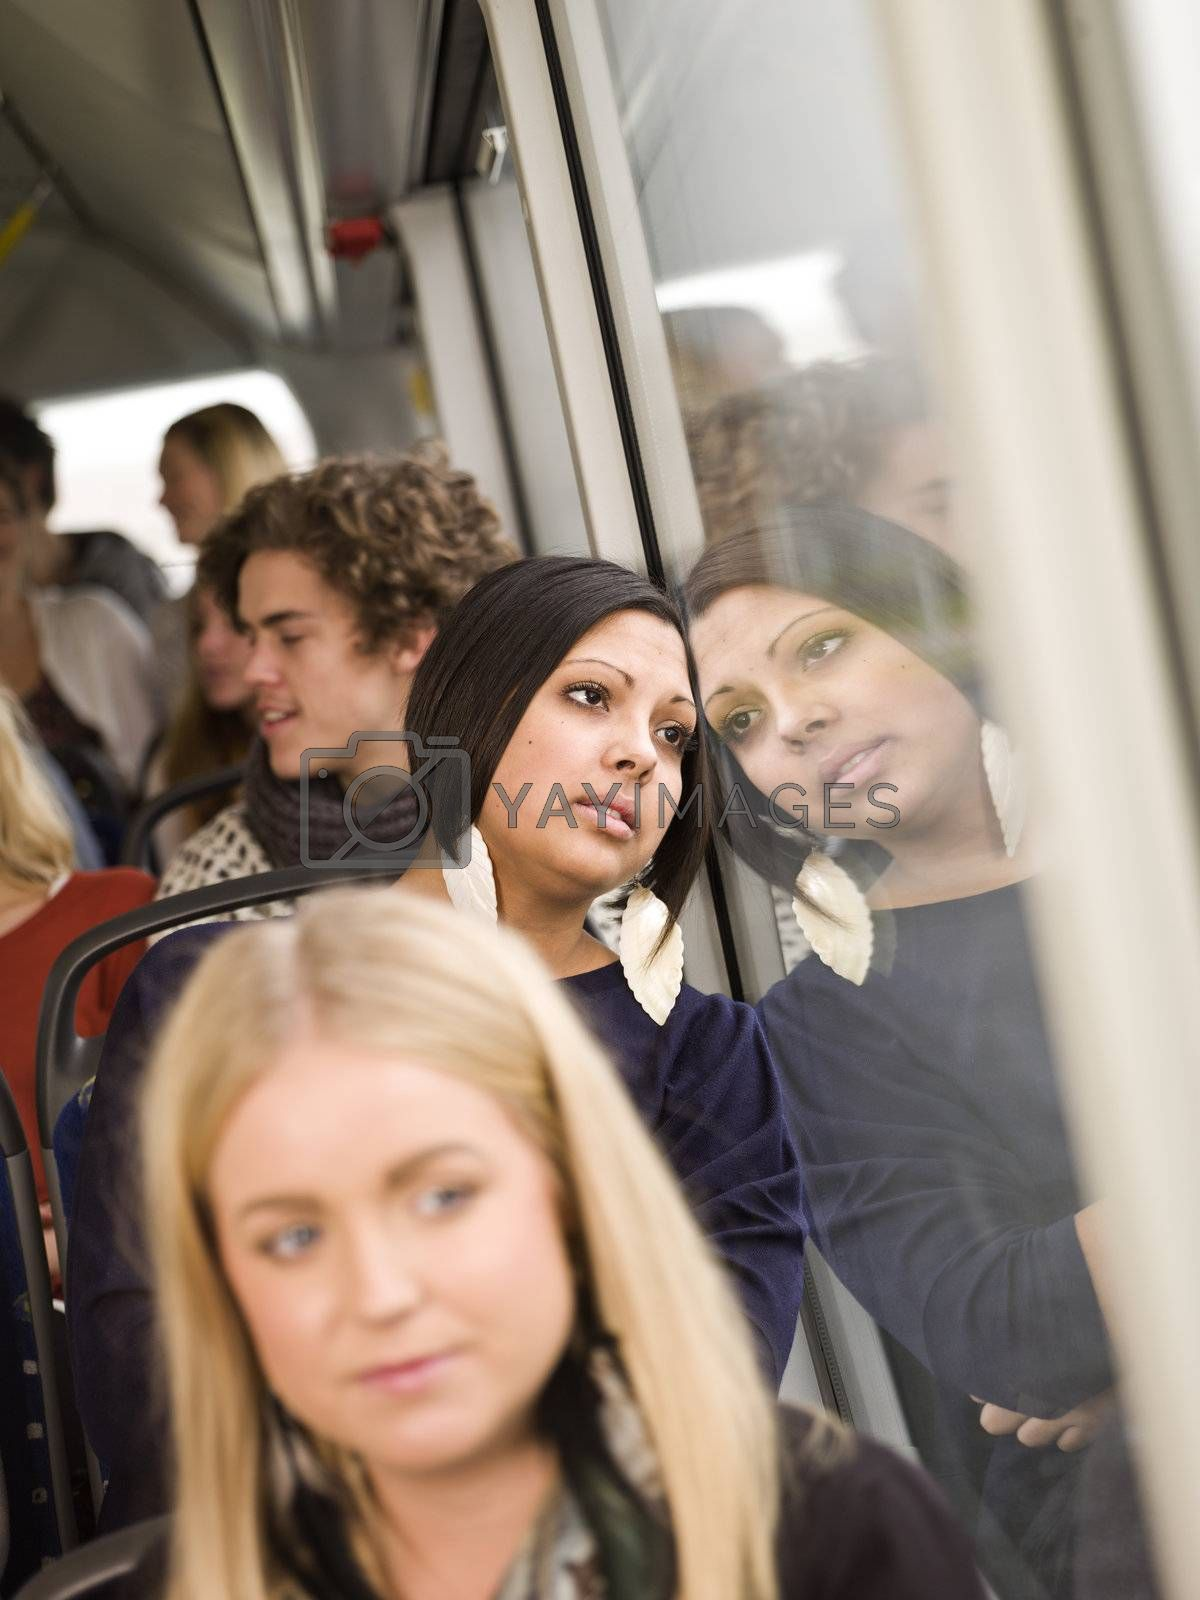 Serious woman on the bus with large group of people